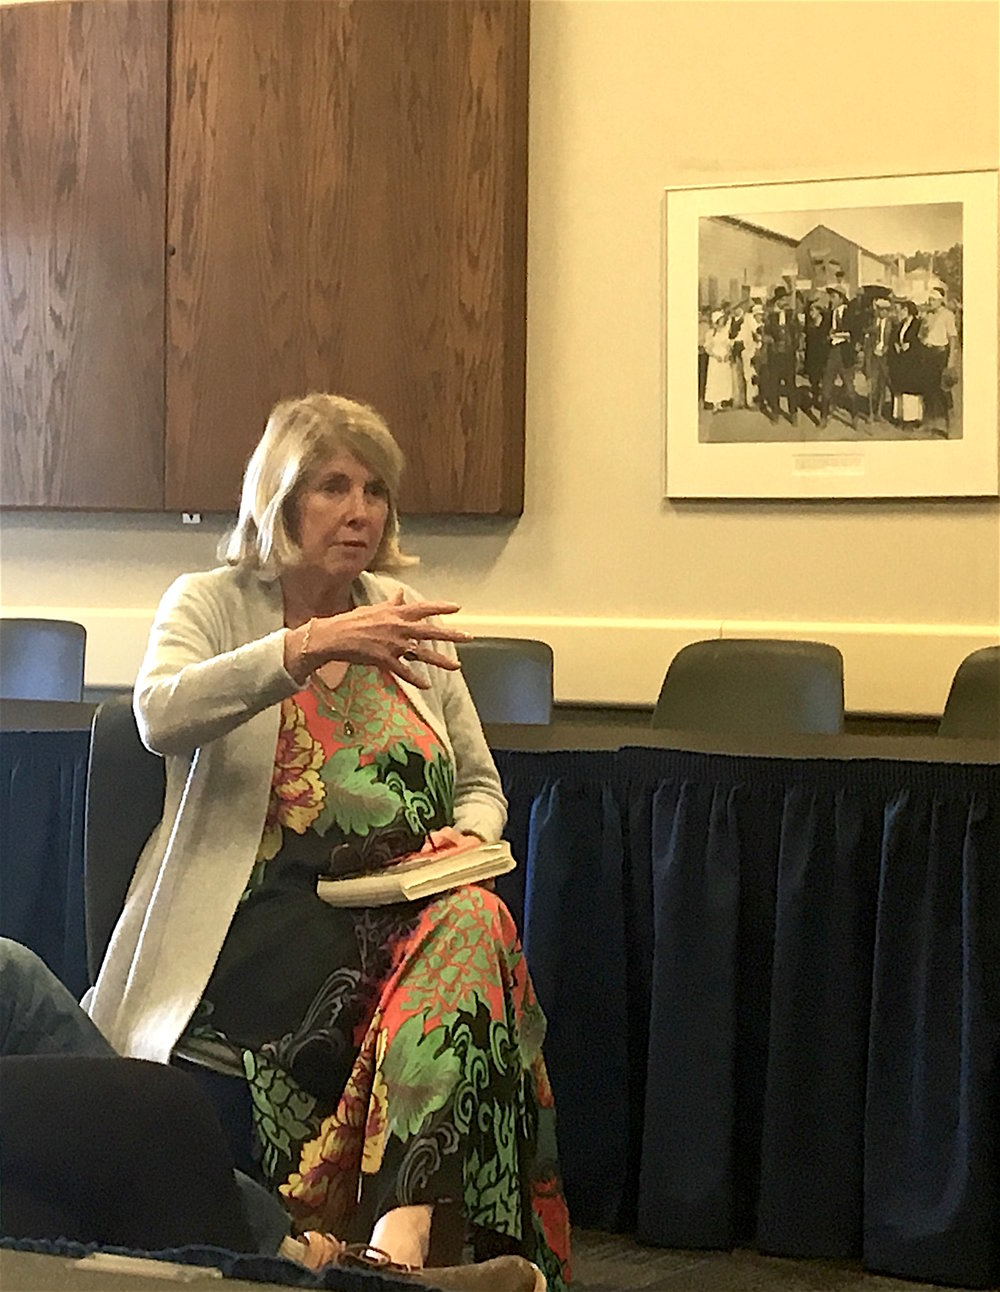 Kay Redfield Jamison discusses her mood disorder and the process of writing through it to a captive audience of young writers at UCSB.